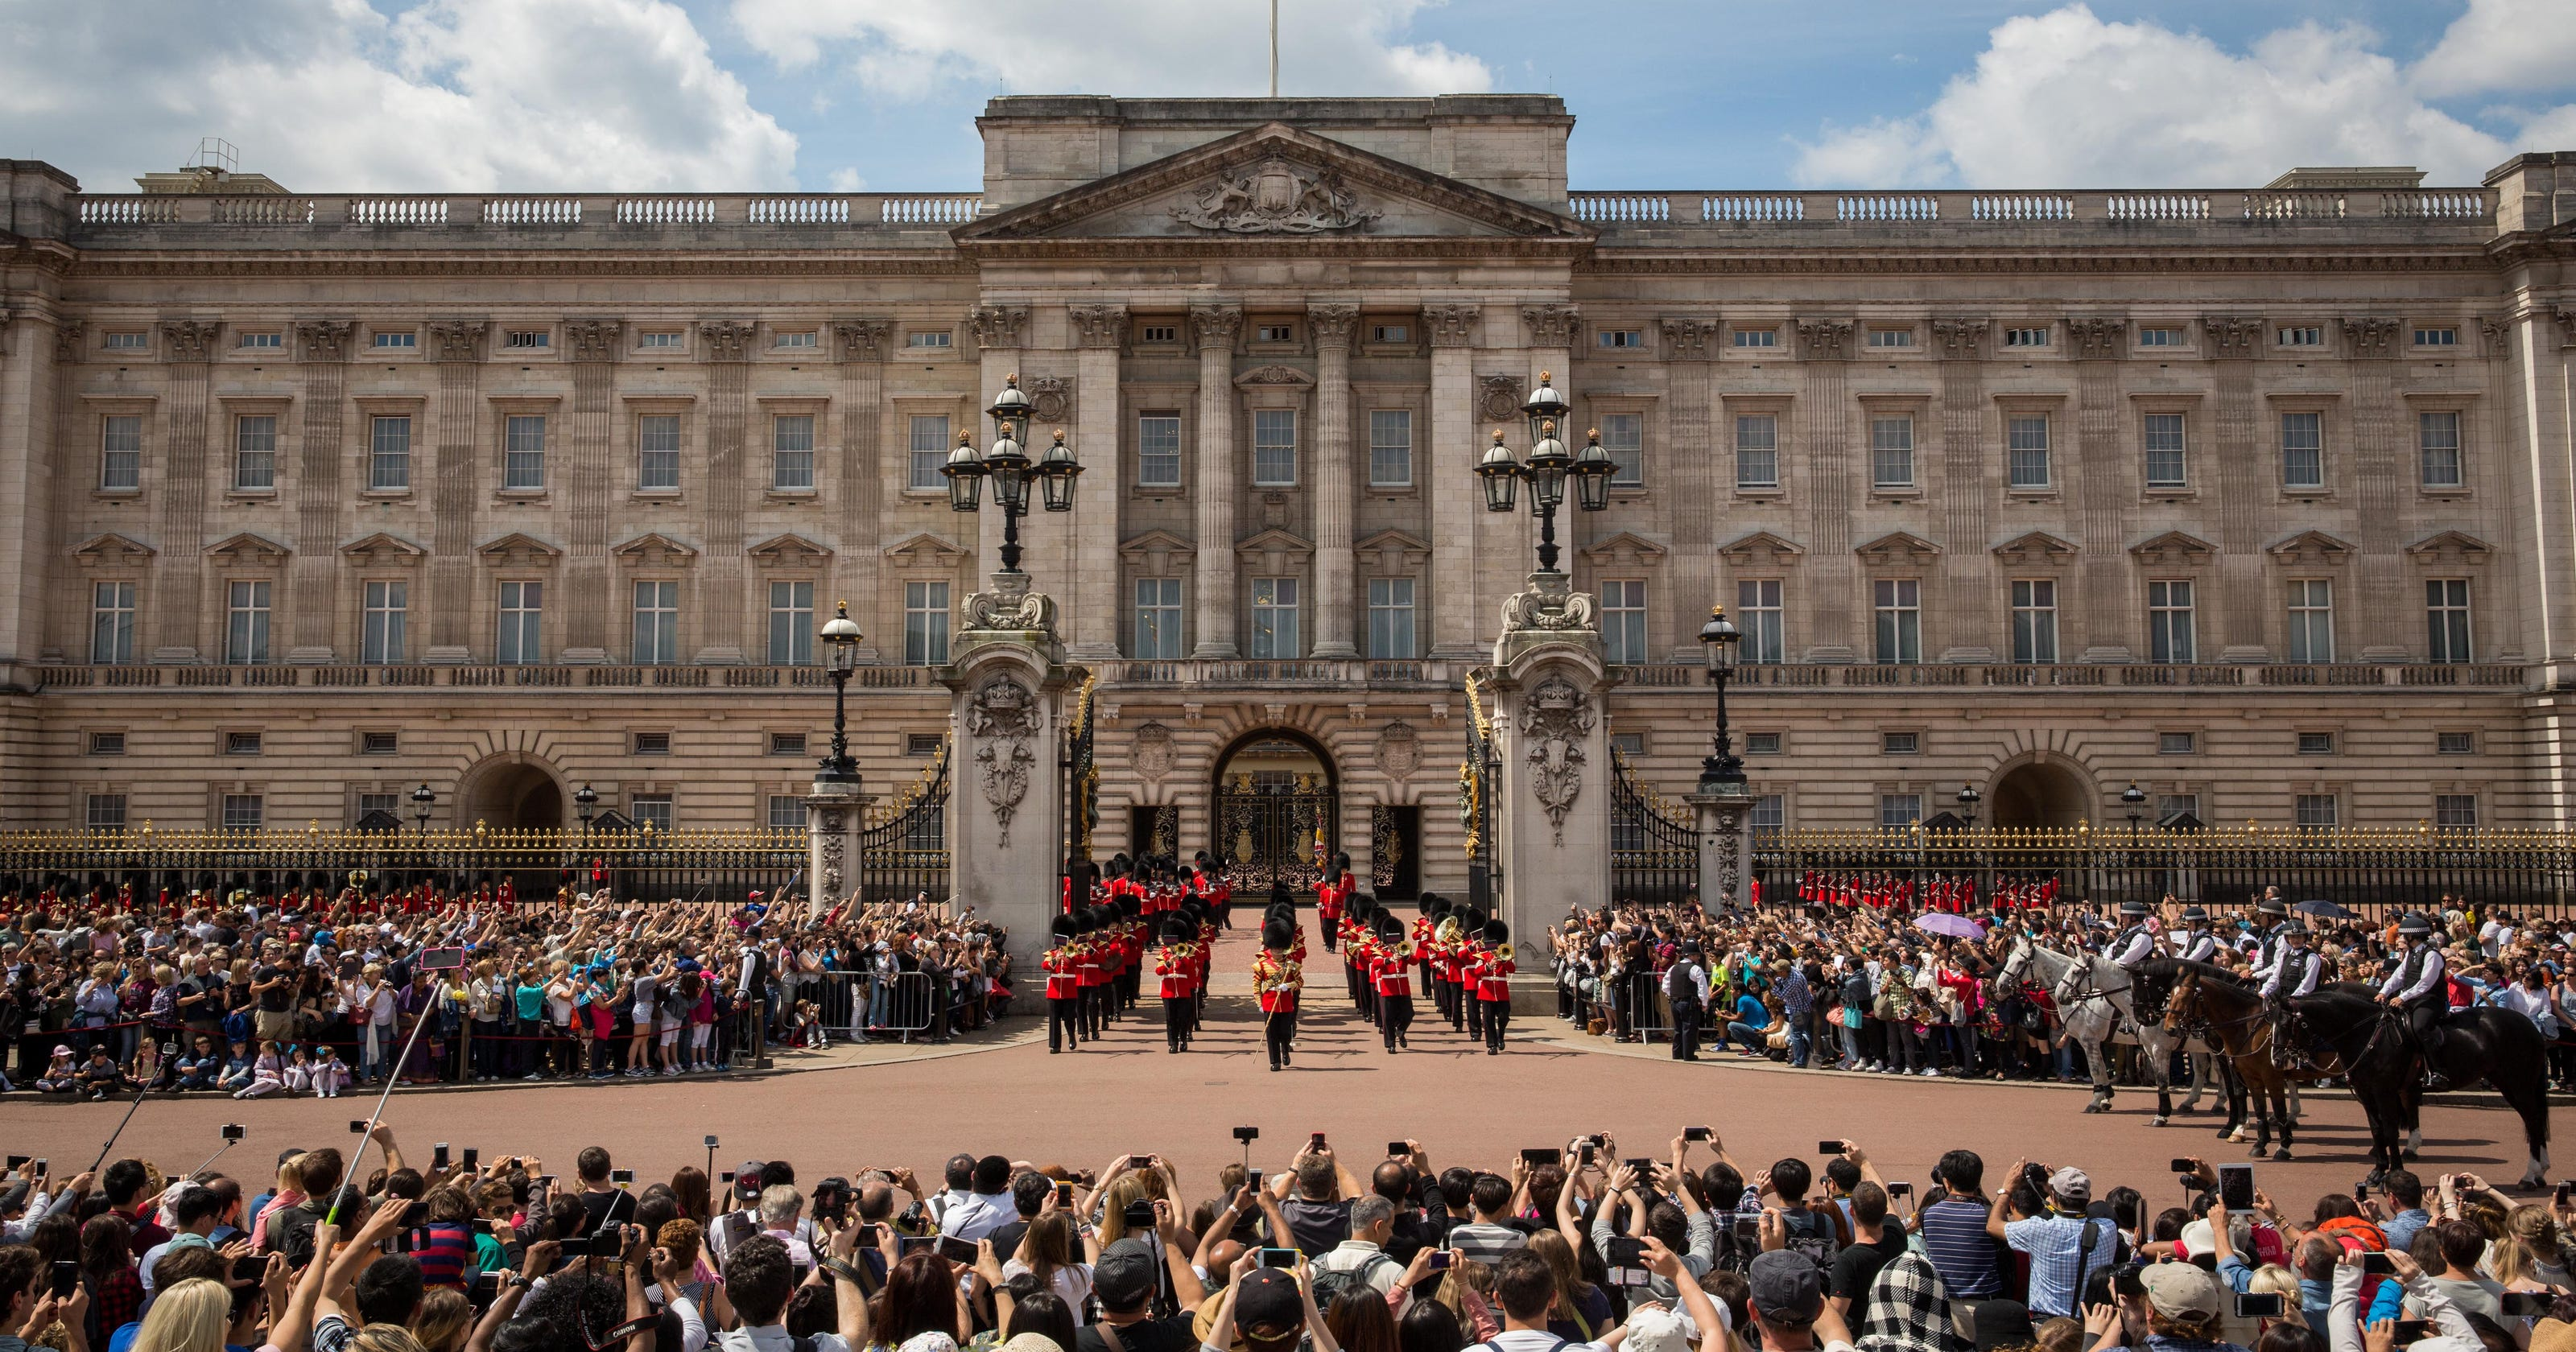 Buckingham Palace Plays Aretha Franklins Respect For Changing Of The Guard